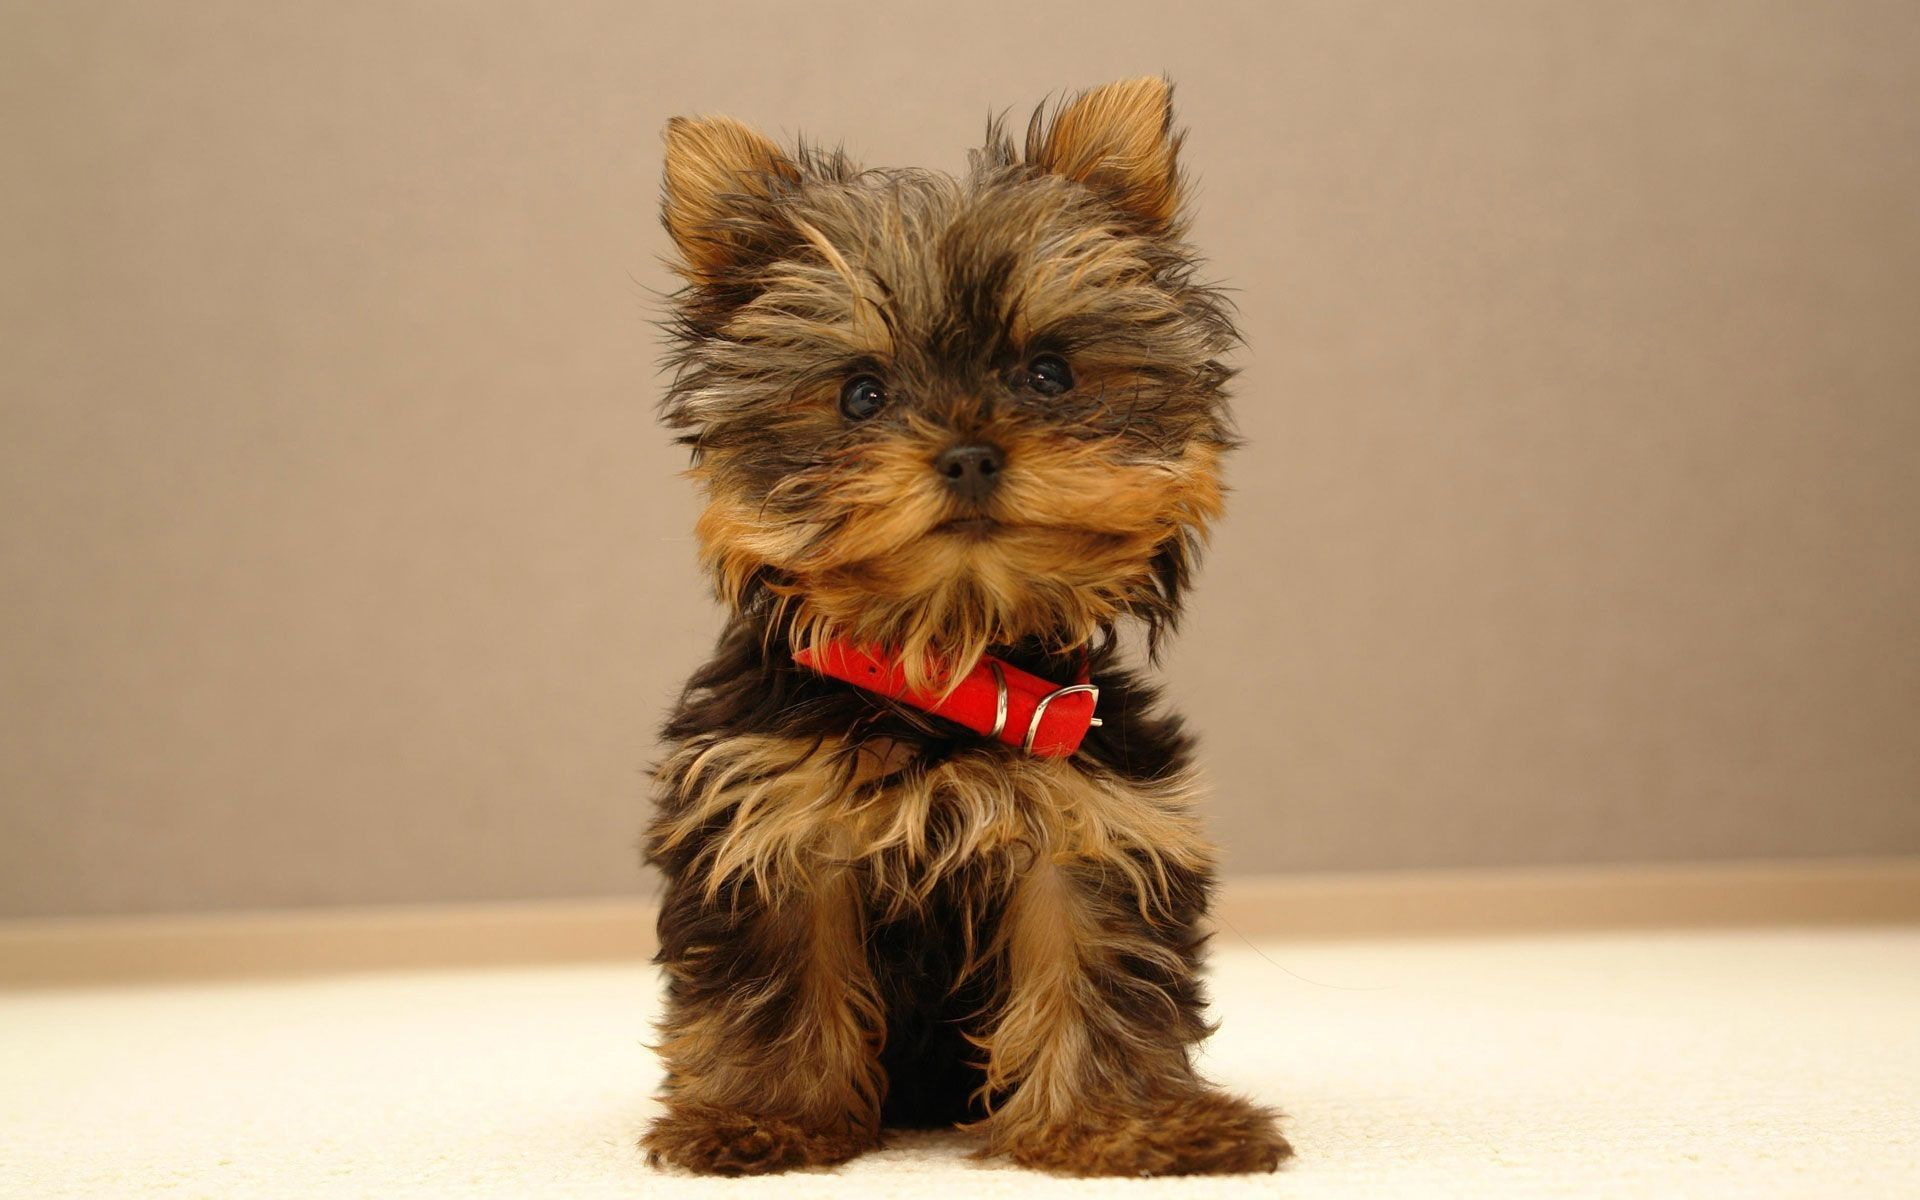 92 Baby Monkey Wallpaper Background Photos Hd Images Yorkie Puppy Yorkie Puppy Training Yorkshire Terrier Dog